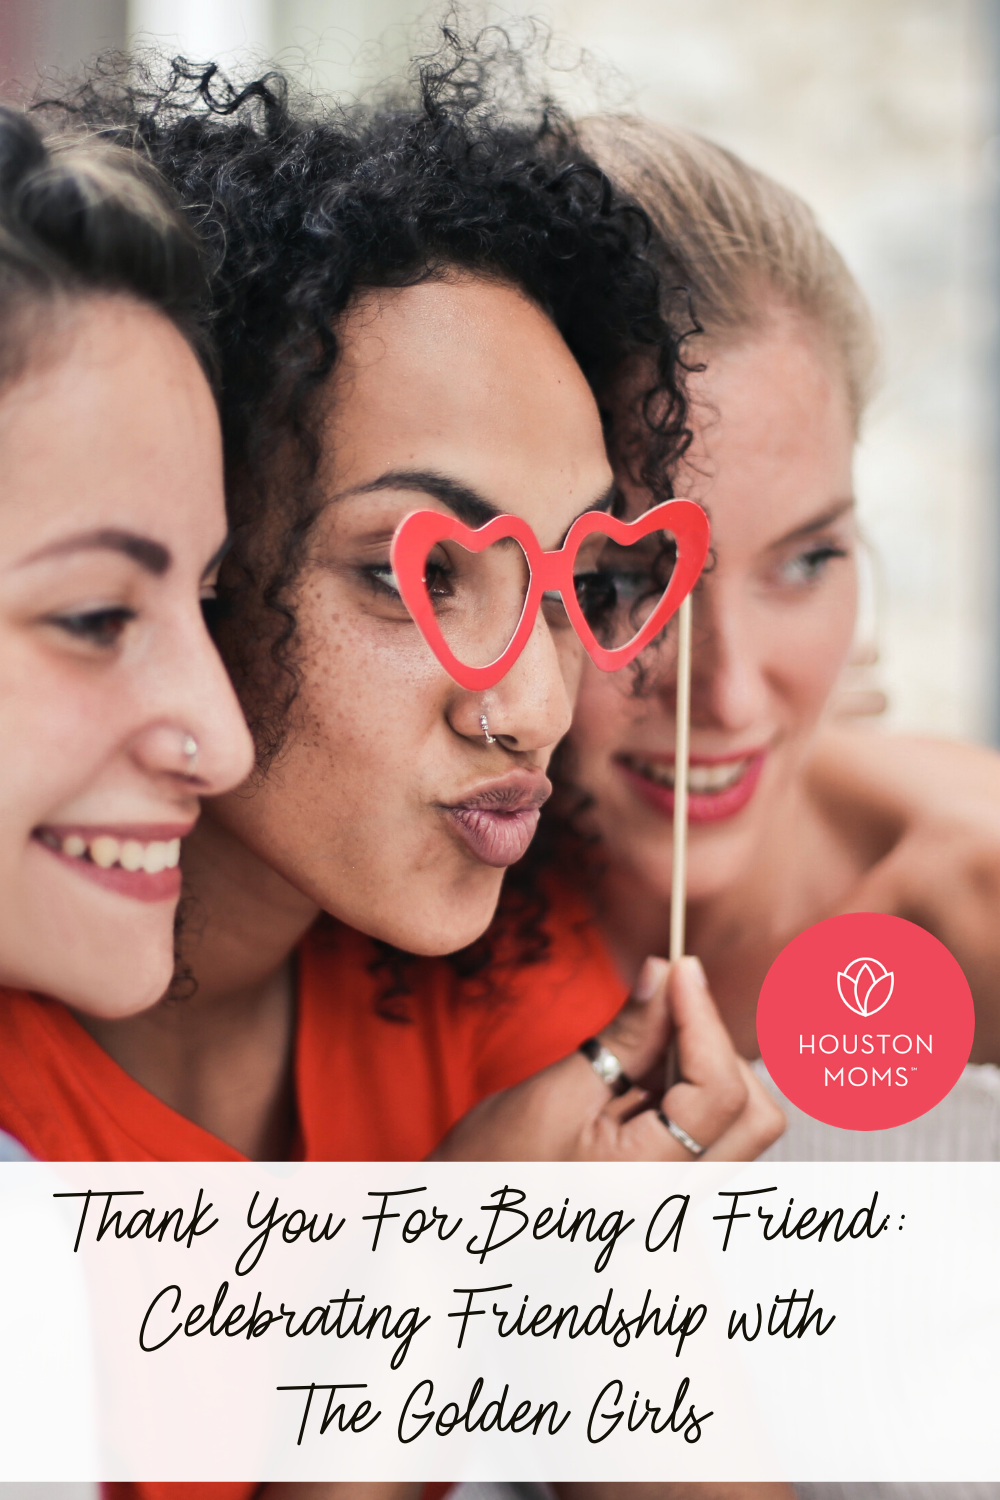 "Houston Moms ""Thank You For Being a Friend:: Celebrating Friendship with The Golden Girls"" #houstonmoms #houstonmomsblog #momsaroundhouston"